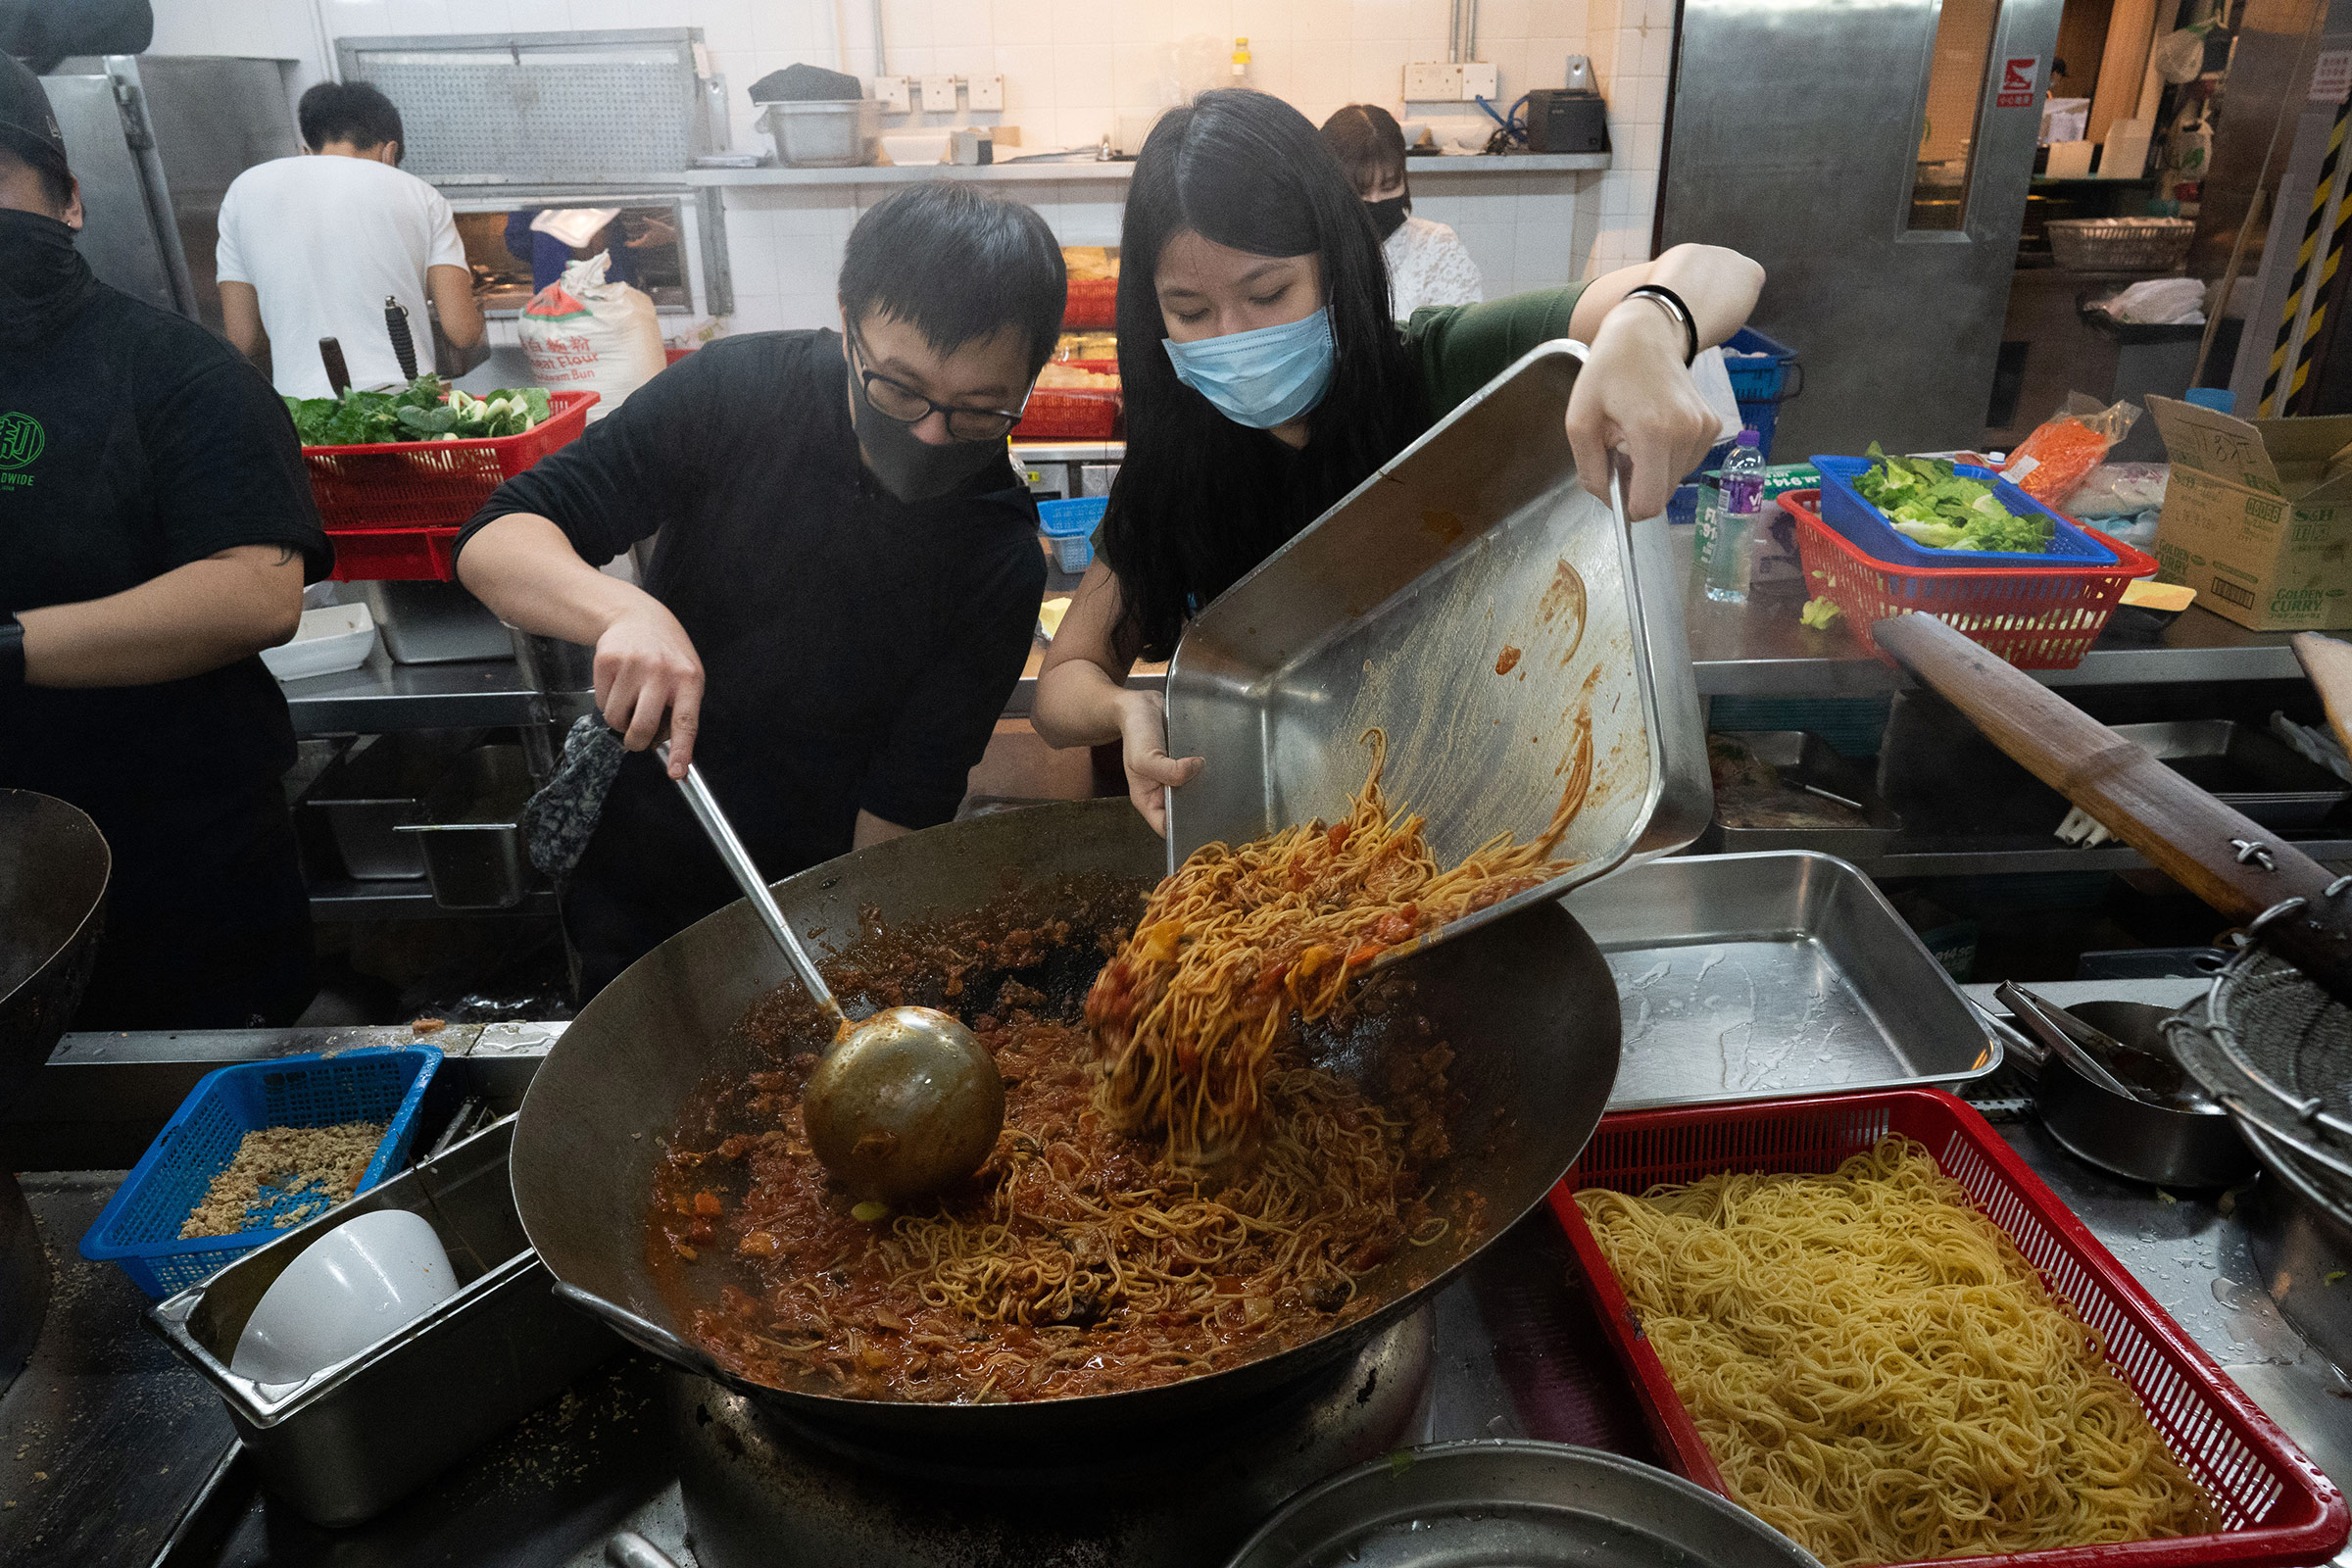 Volunteers, some of whom had never cooked before, help prepare food for the protestors gathered at PolyU, Nov. 14.